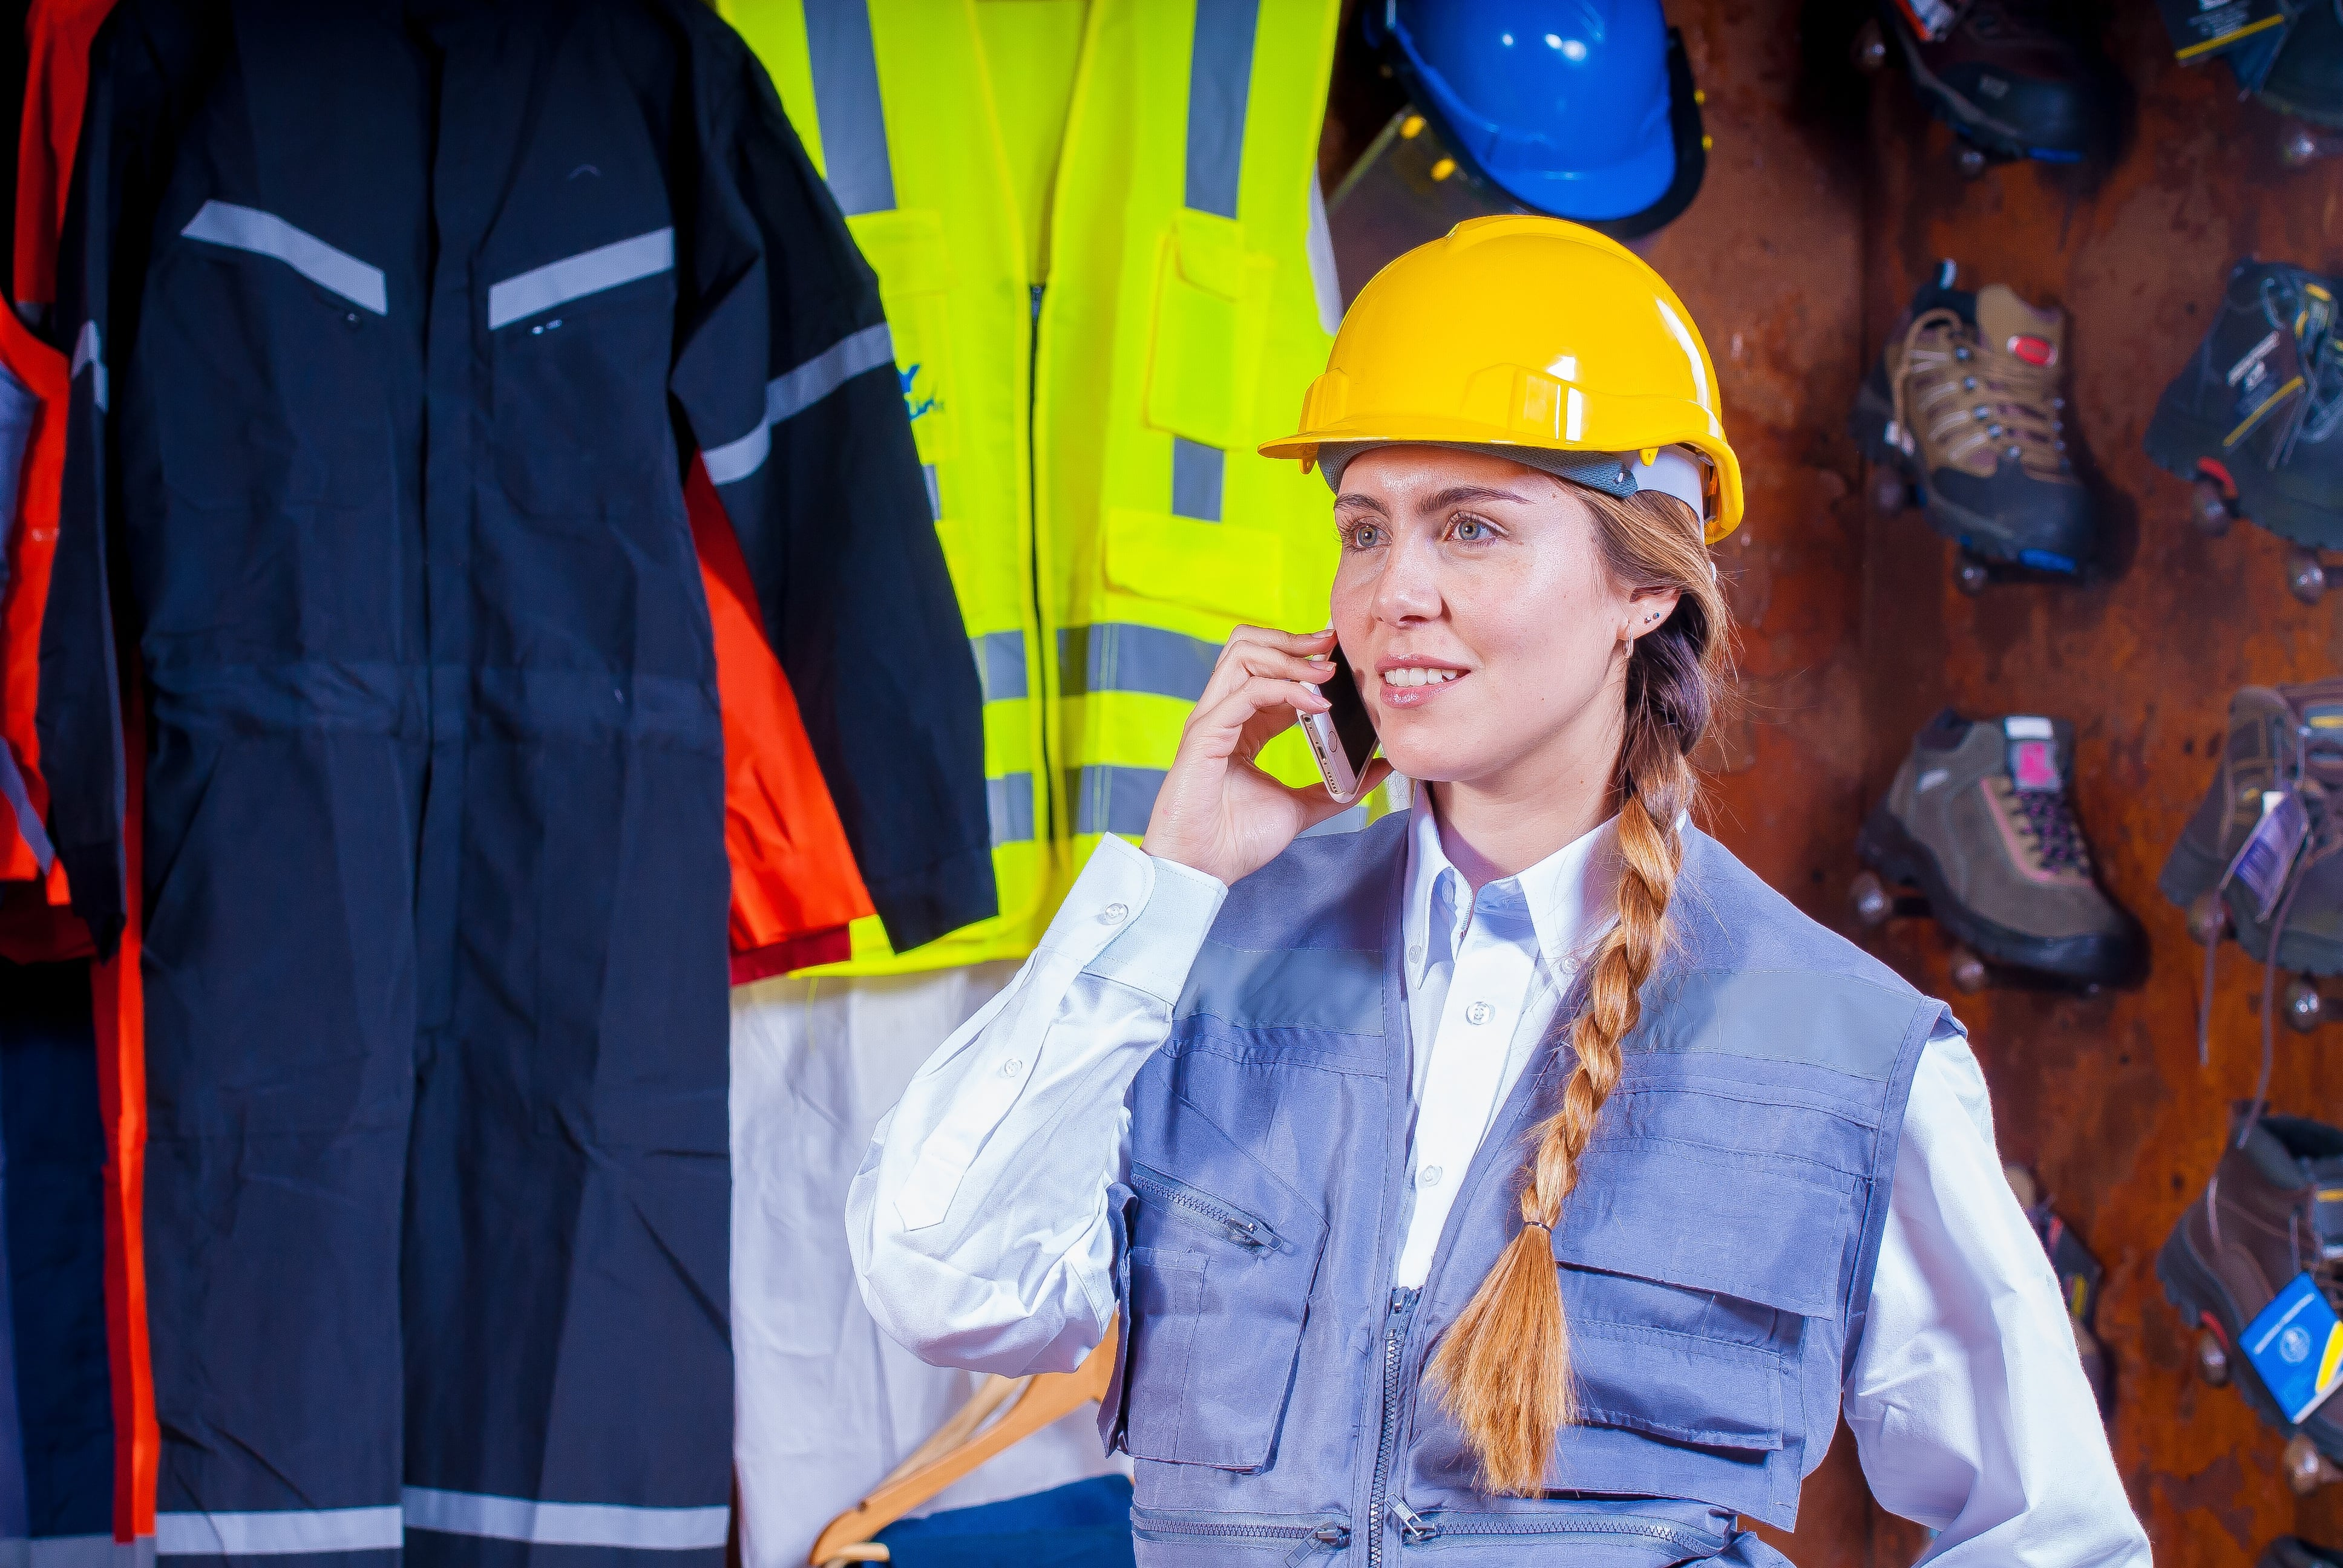 working to improve safety in the workplace